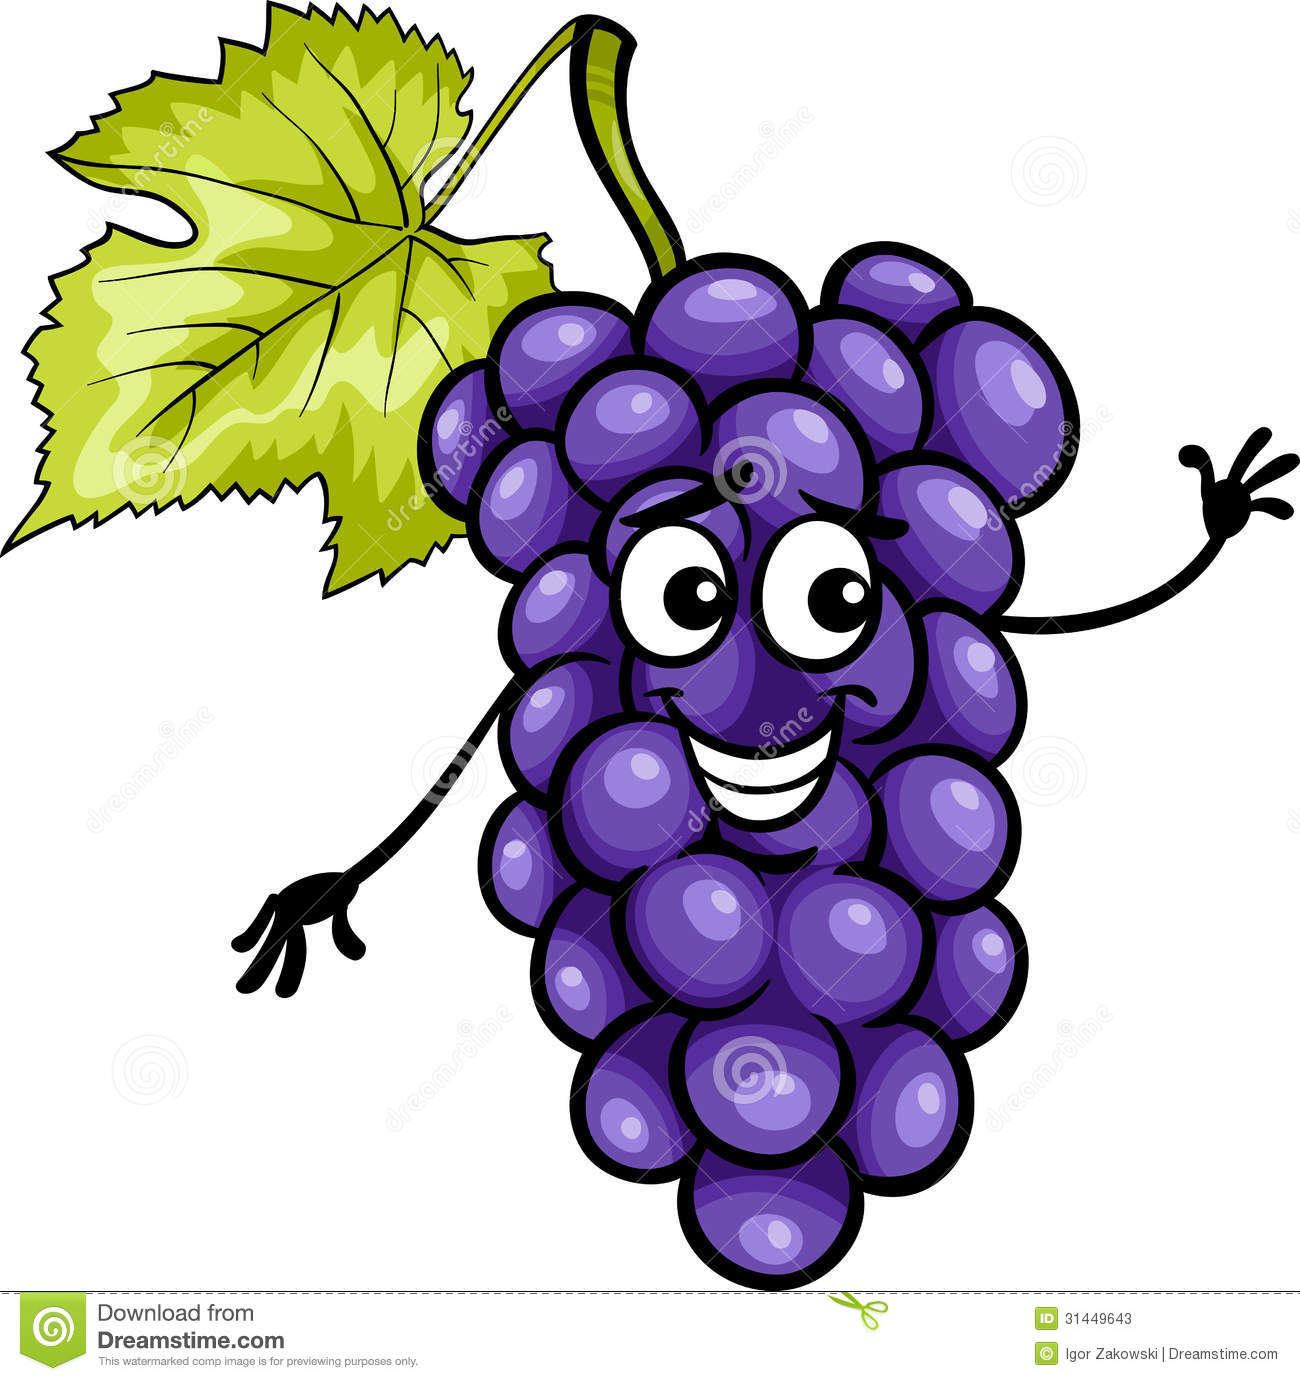 Cartoon grapes clipart.